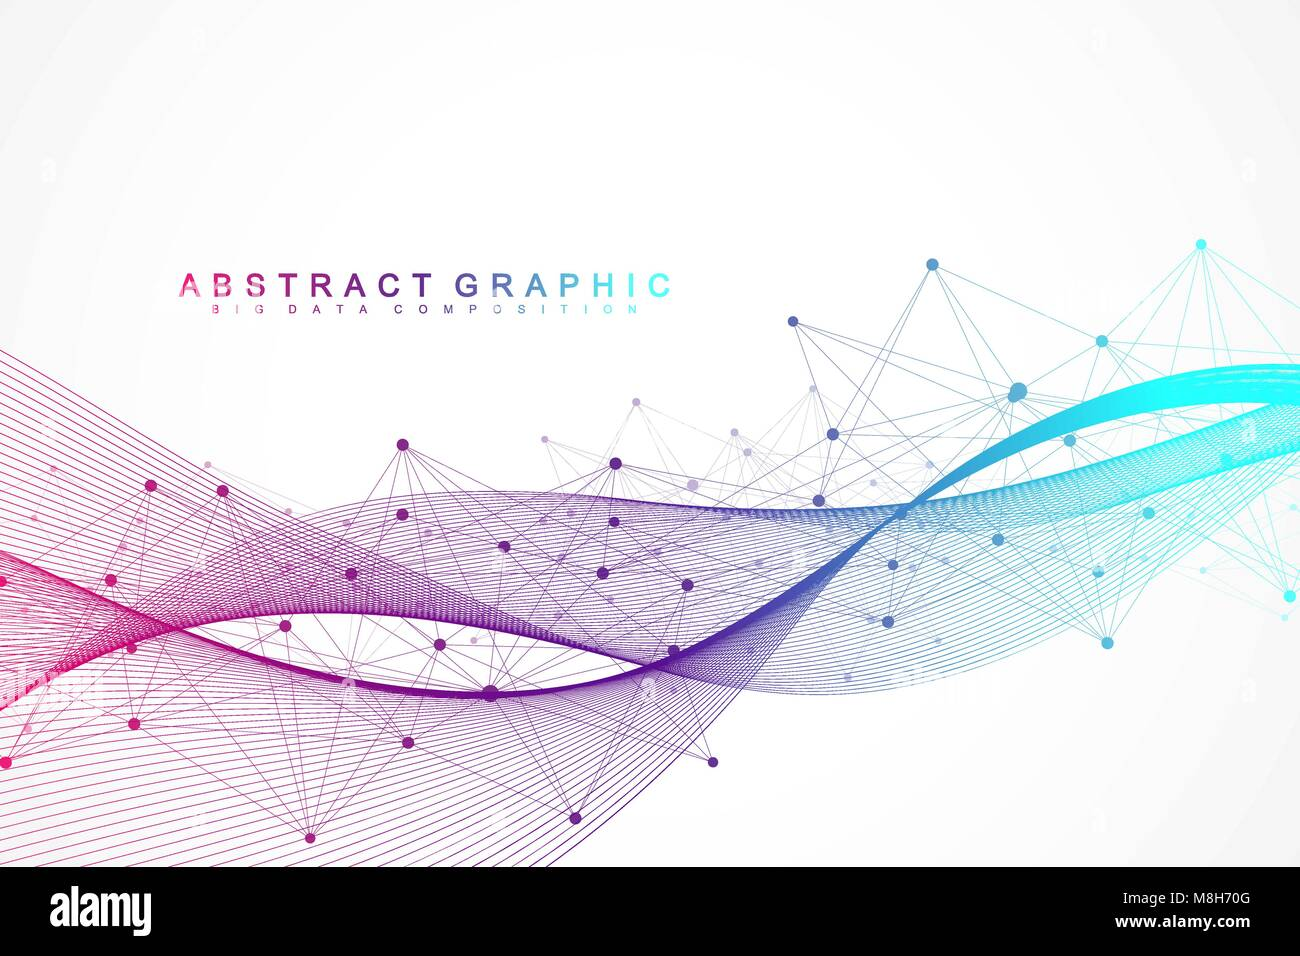 Geometric abstract background with connected lines and dots. Wave flow. Molecule and communication background. Graphic - Stock Image